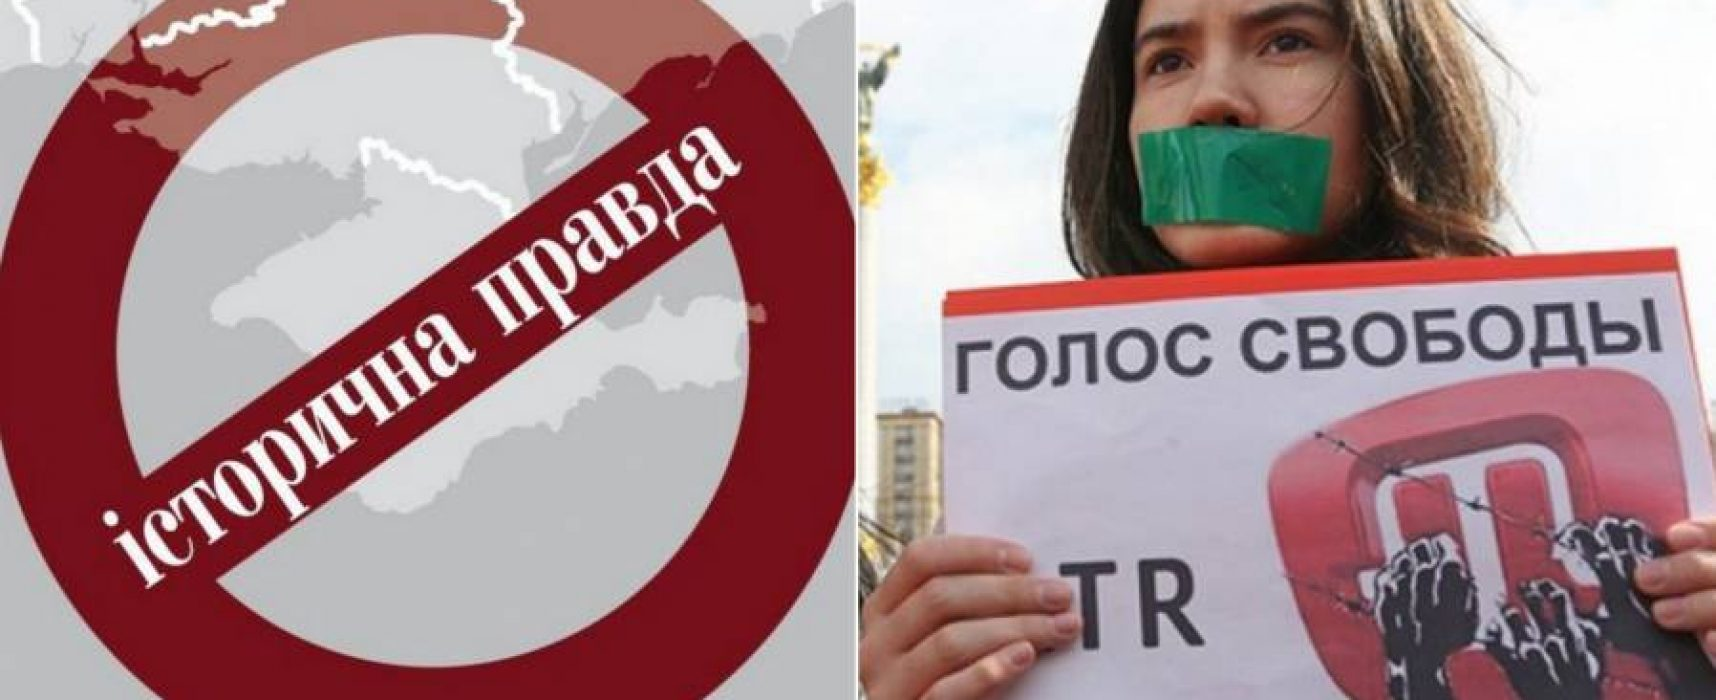 Historical Truth Banned in Russian-Occupied Crimea